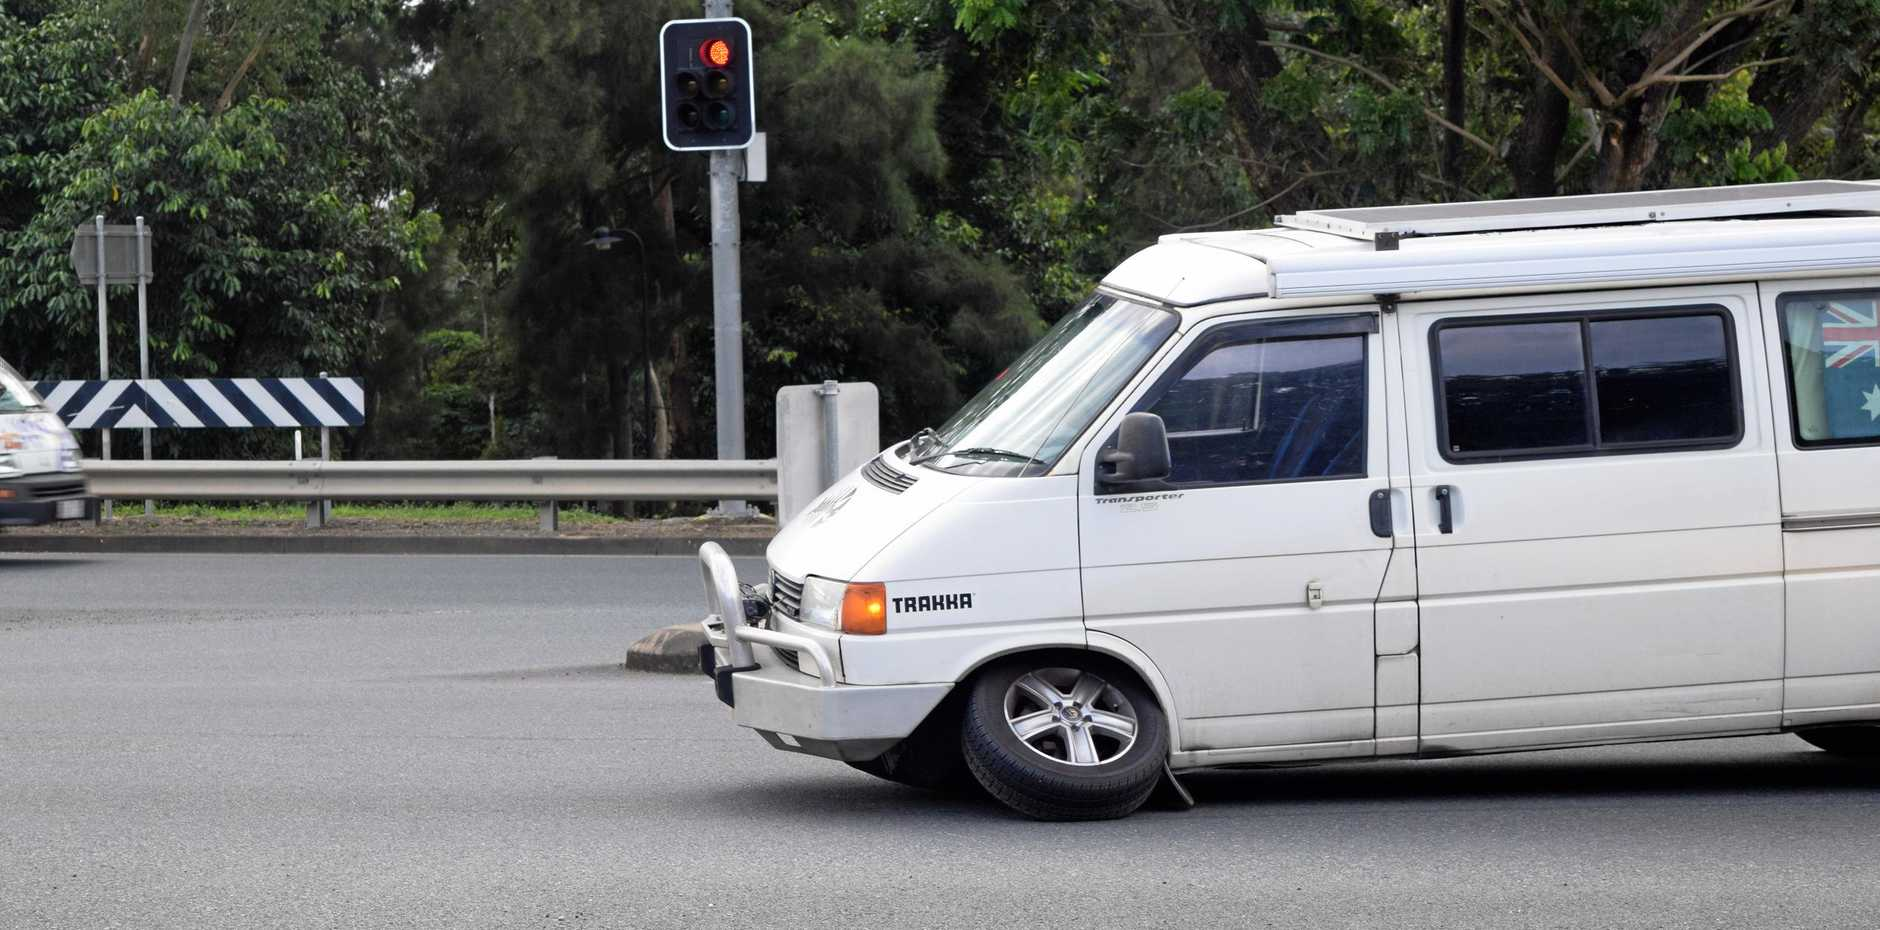 A van has lost one of its front tyres at the intersection of Island Drive and Shute Harbour Road, blocking traffic.